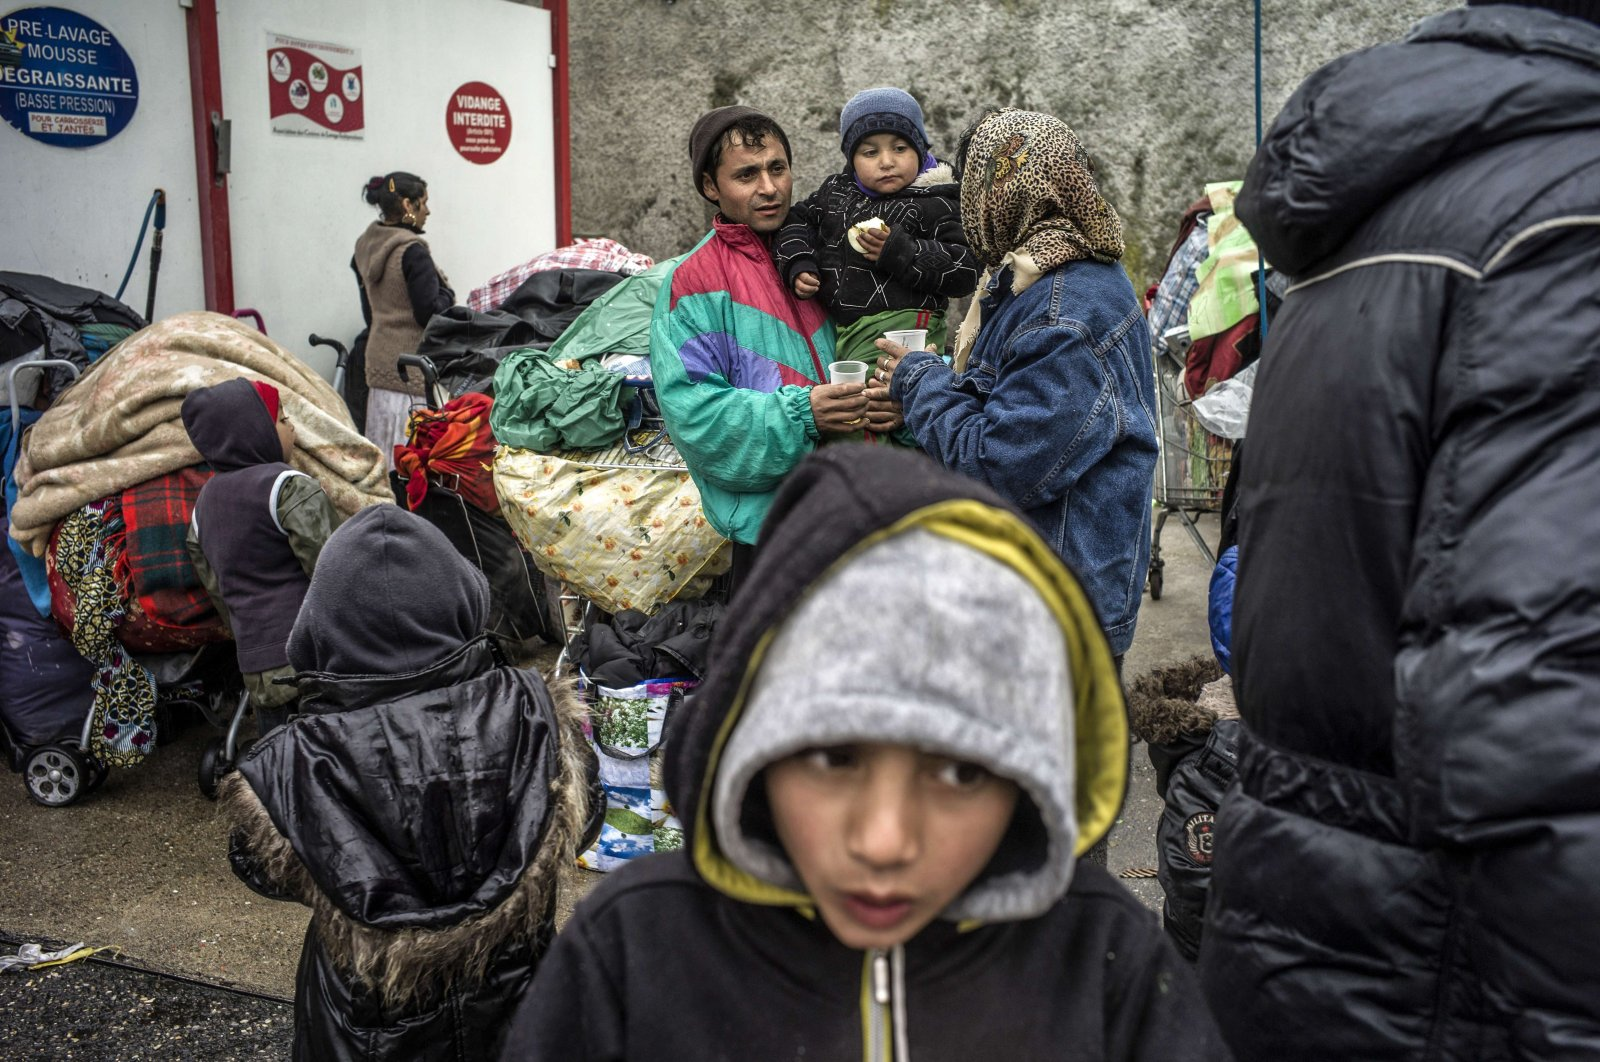 Roma people wait as bulldozers destroy their makeshift camp in Villeurbanne, near Lyon, Franc, March 28, 2013. (AFP Photo)